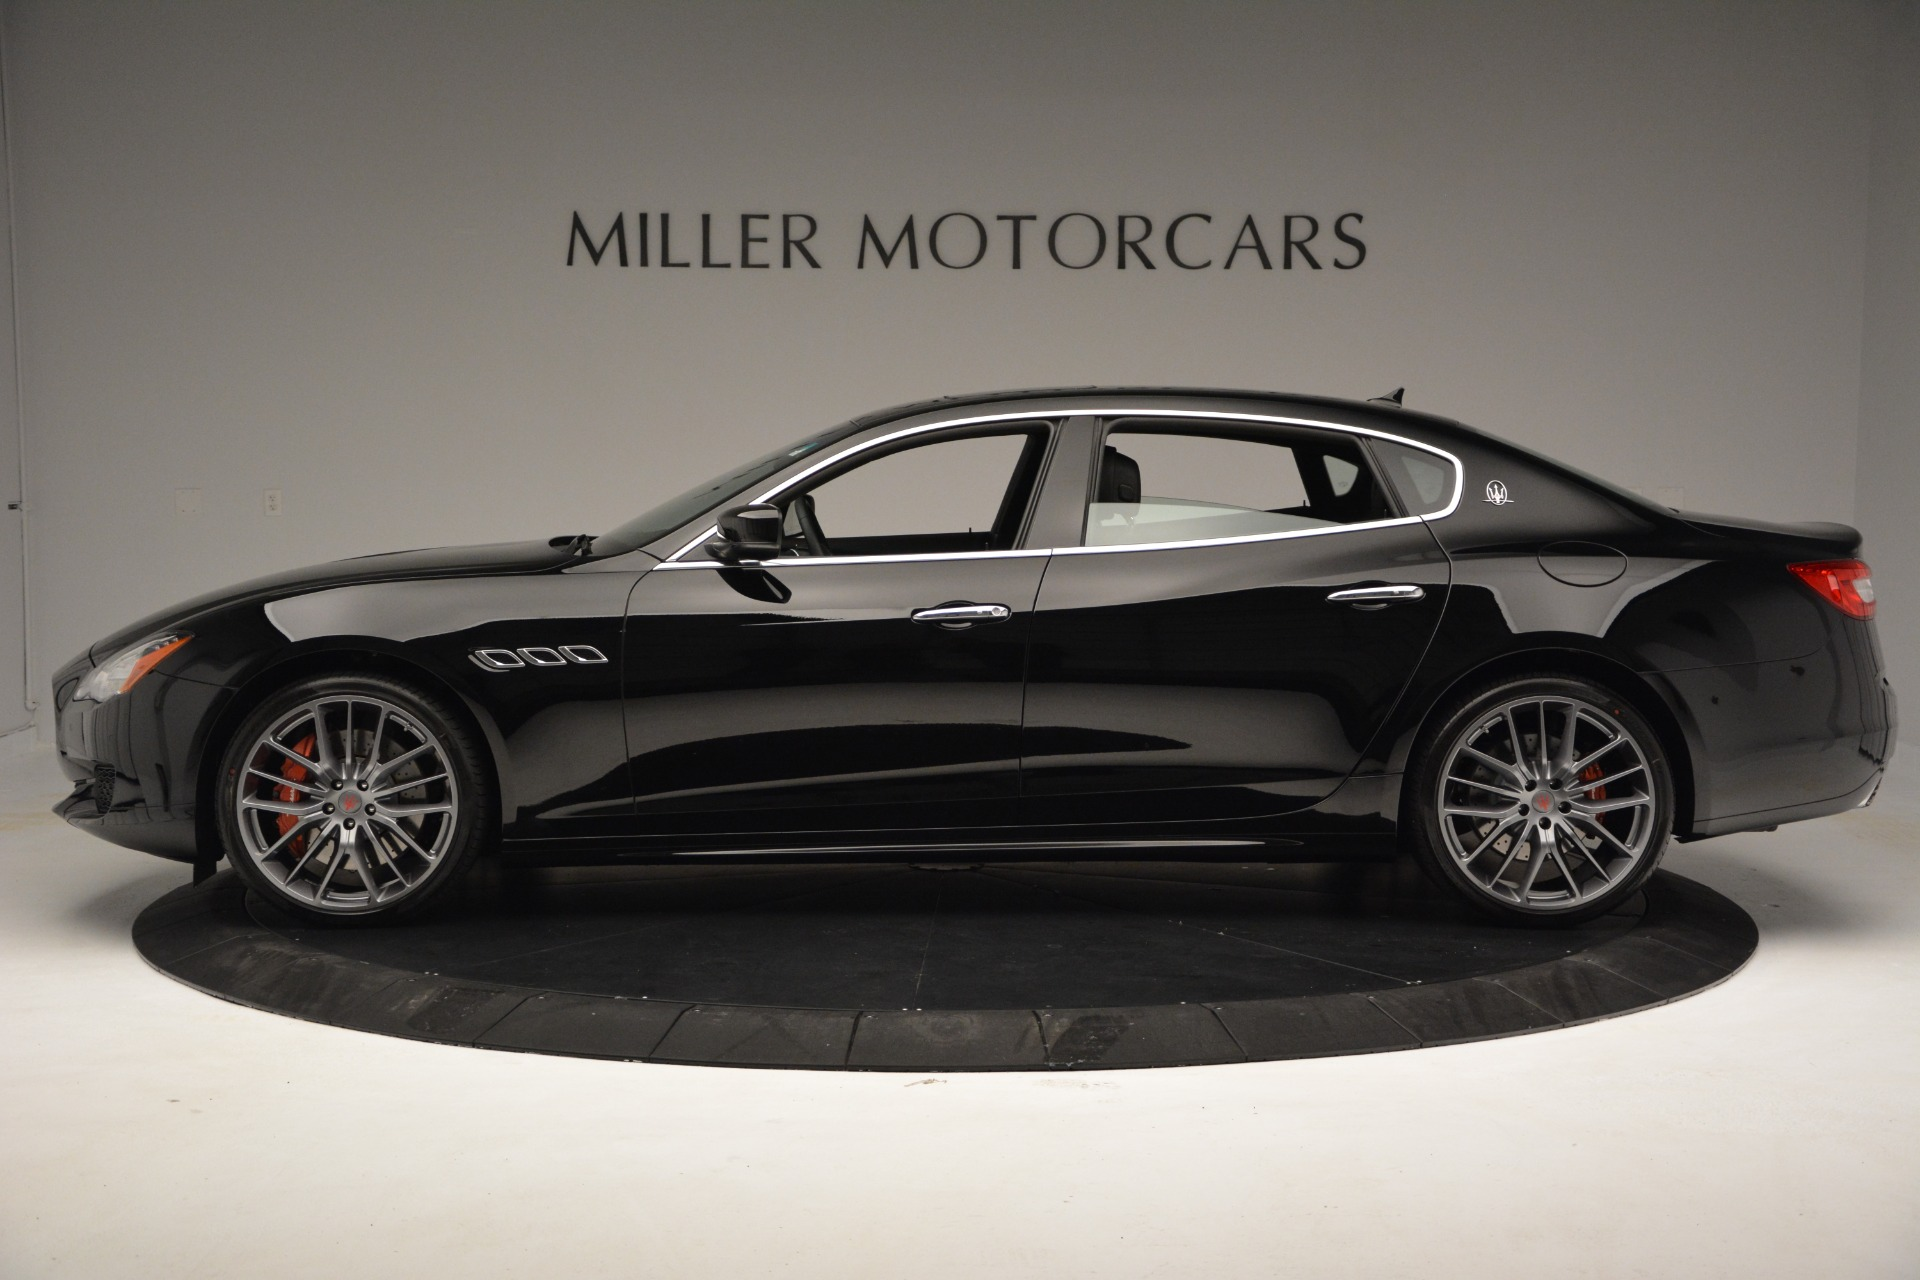 Used 2015 Maserati Quattroporte GTS For Sale In Westport, CT 2993_p3